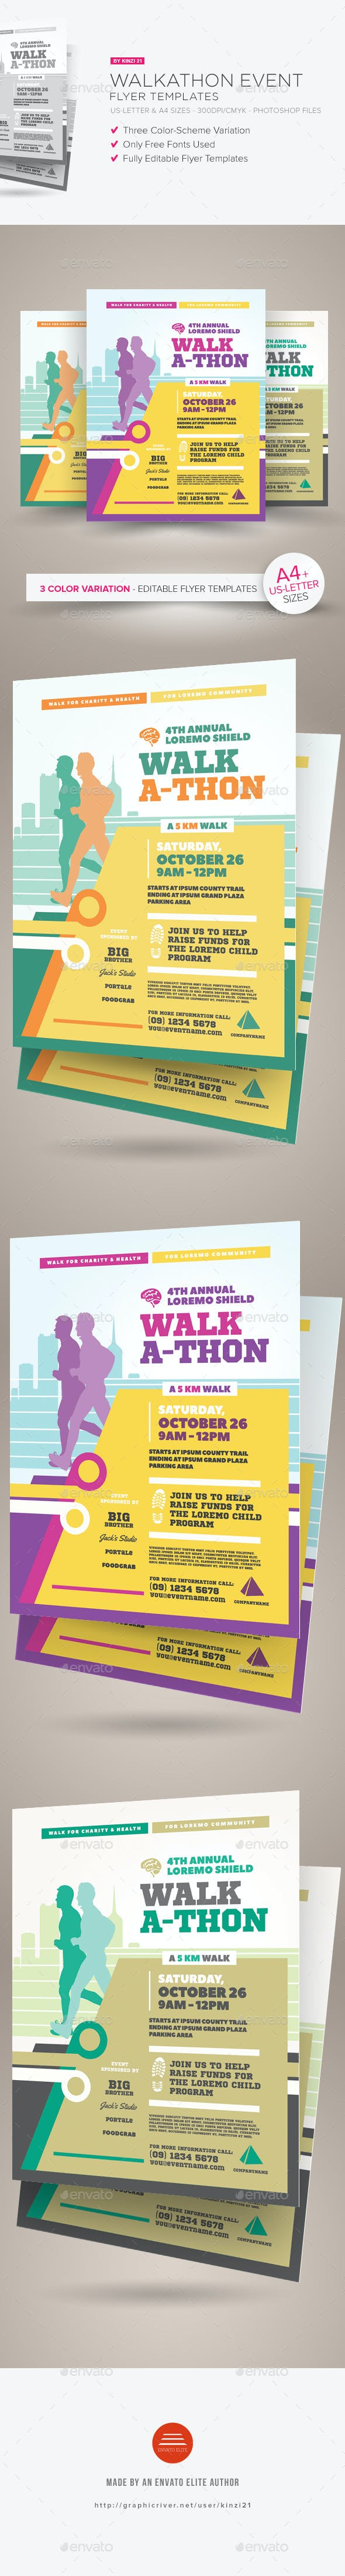 walkathon event flyer templates by kinzi21 graphicriver